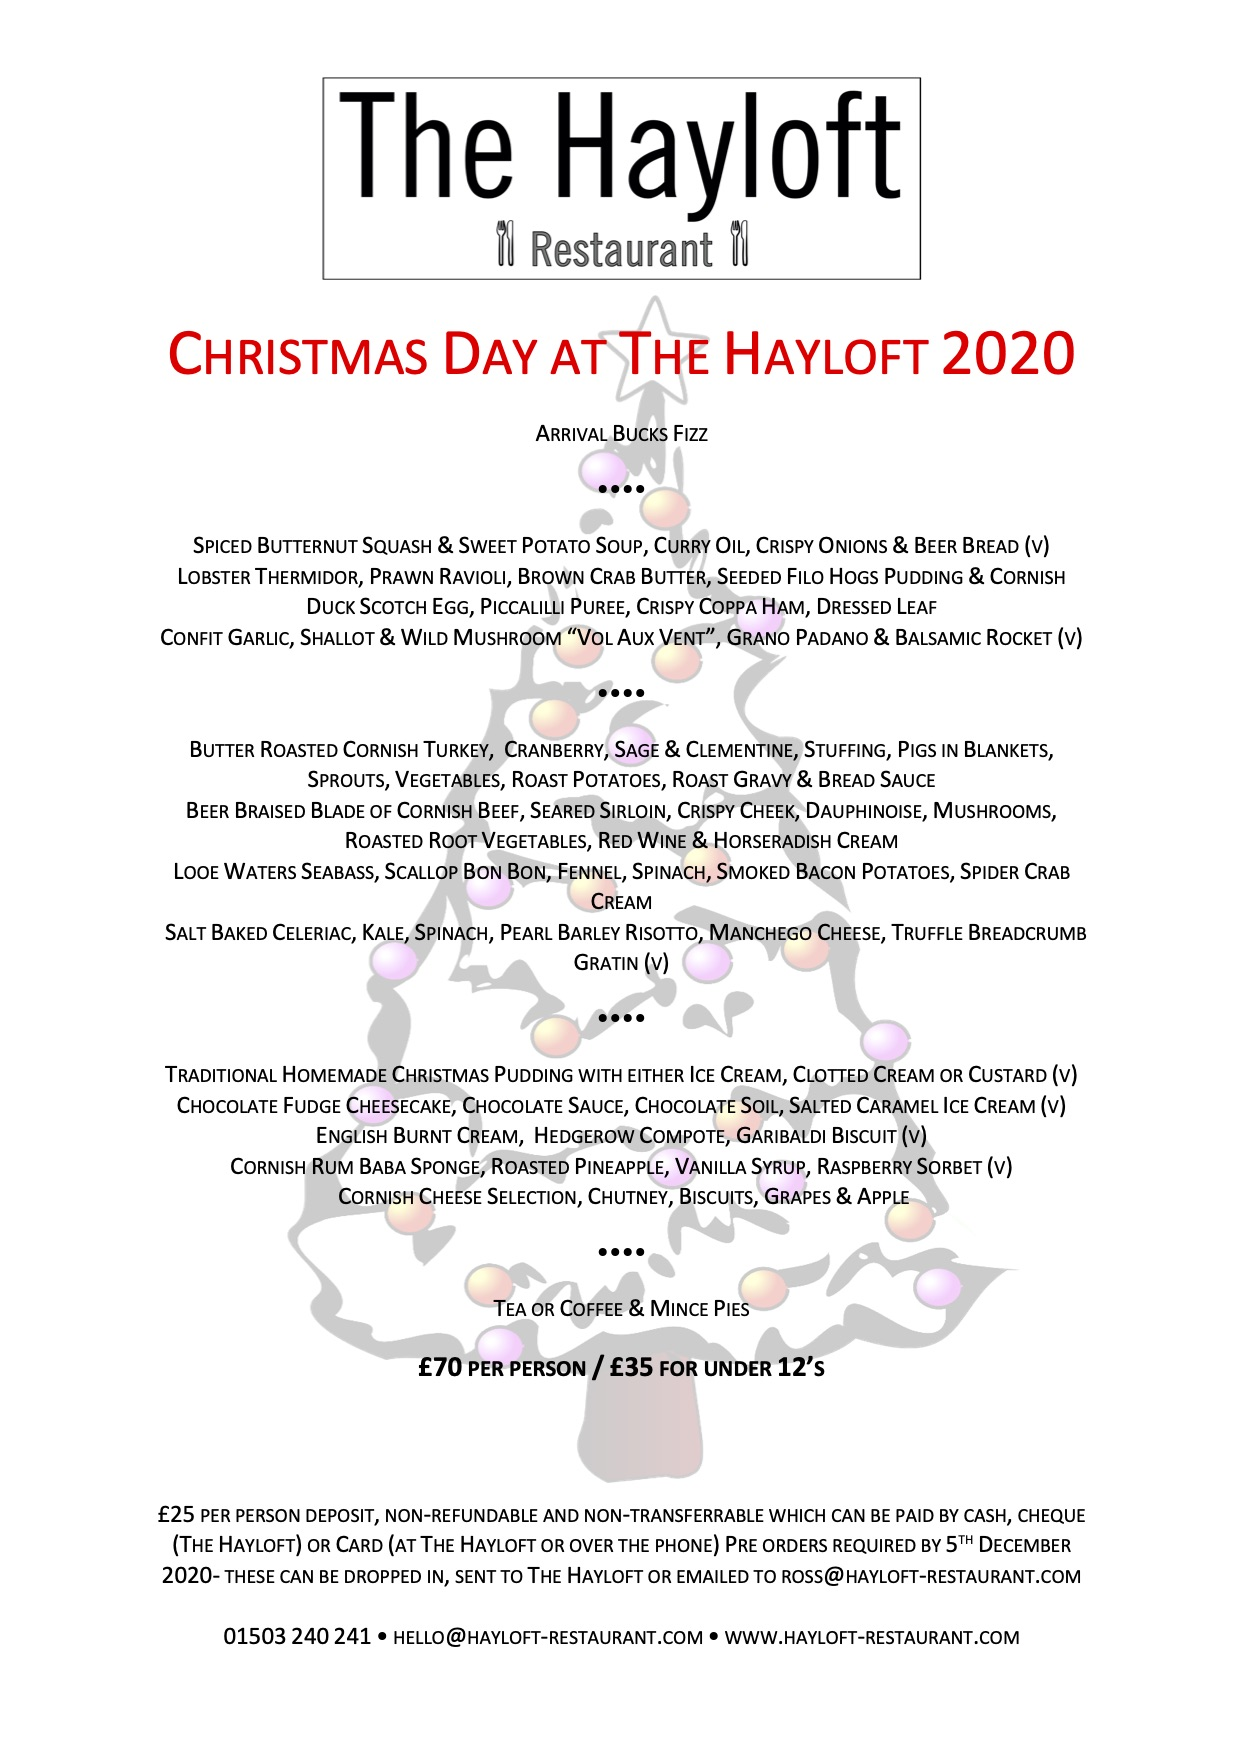 Christmas Day at The Hayloft 2020